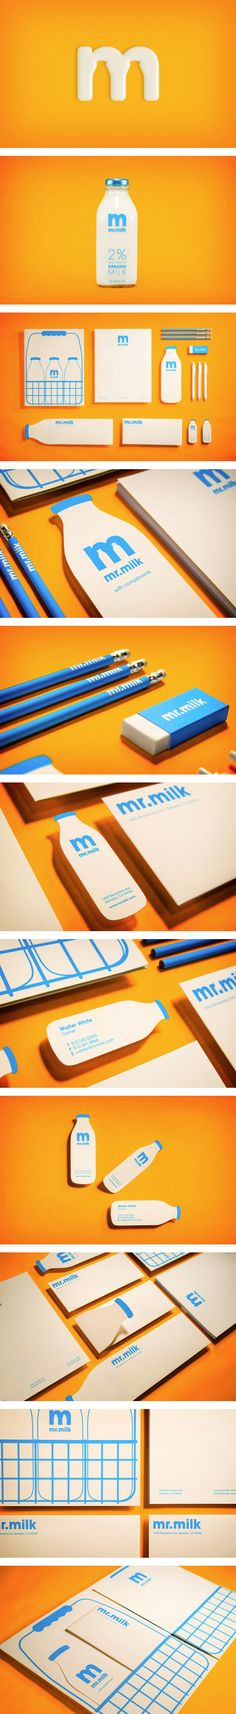 Mr. Milk | #corporate #design #corporatedesign #identity #logo #branding #stationary #packaging